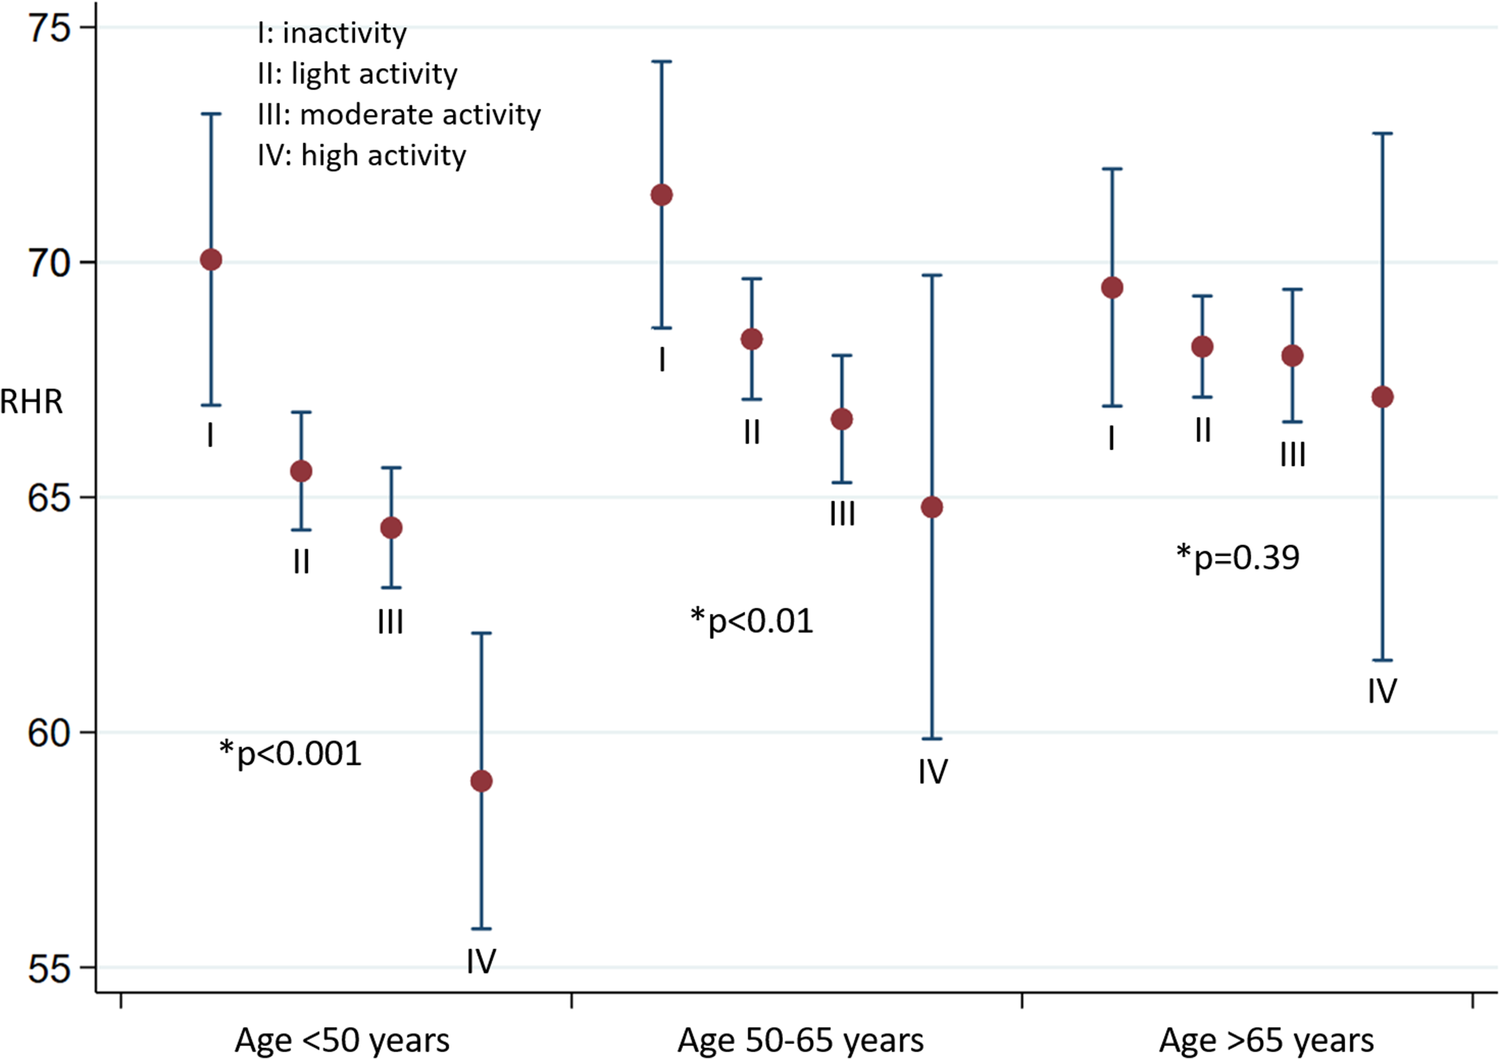 The association between physical activity and cardiac performance is